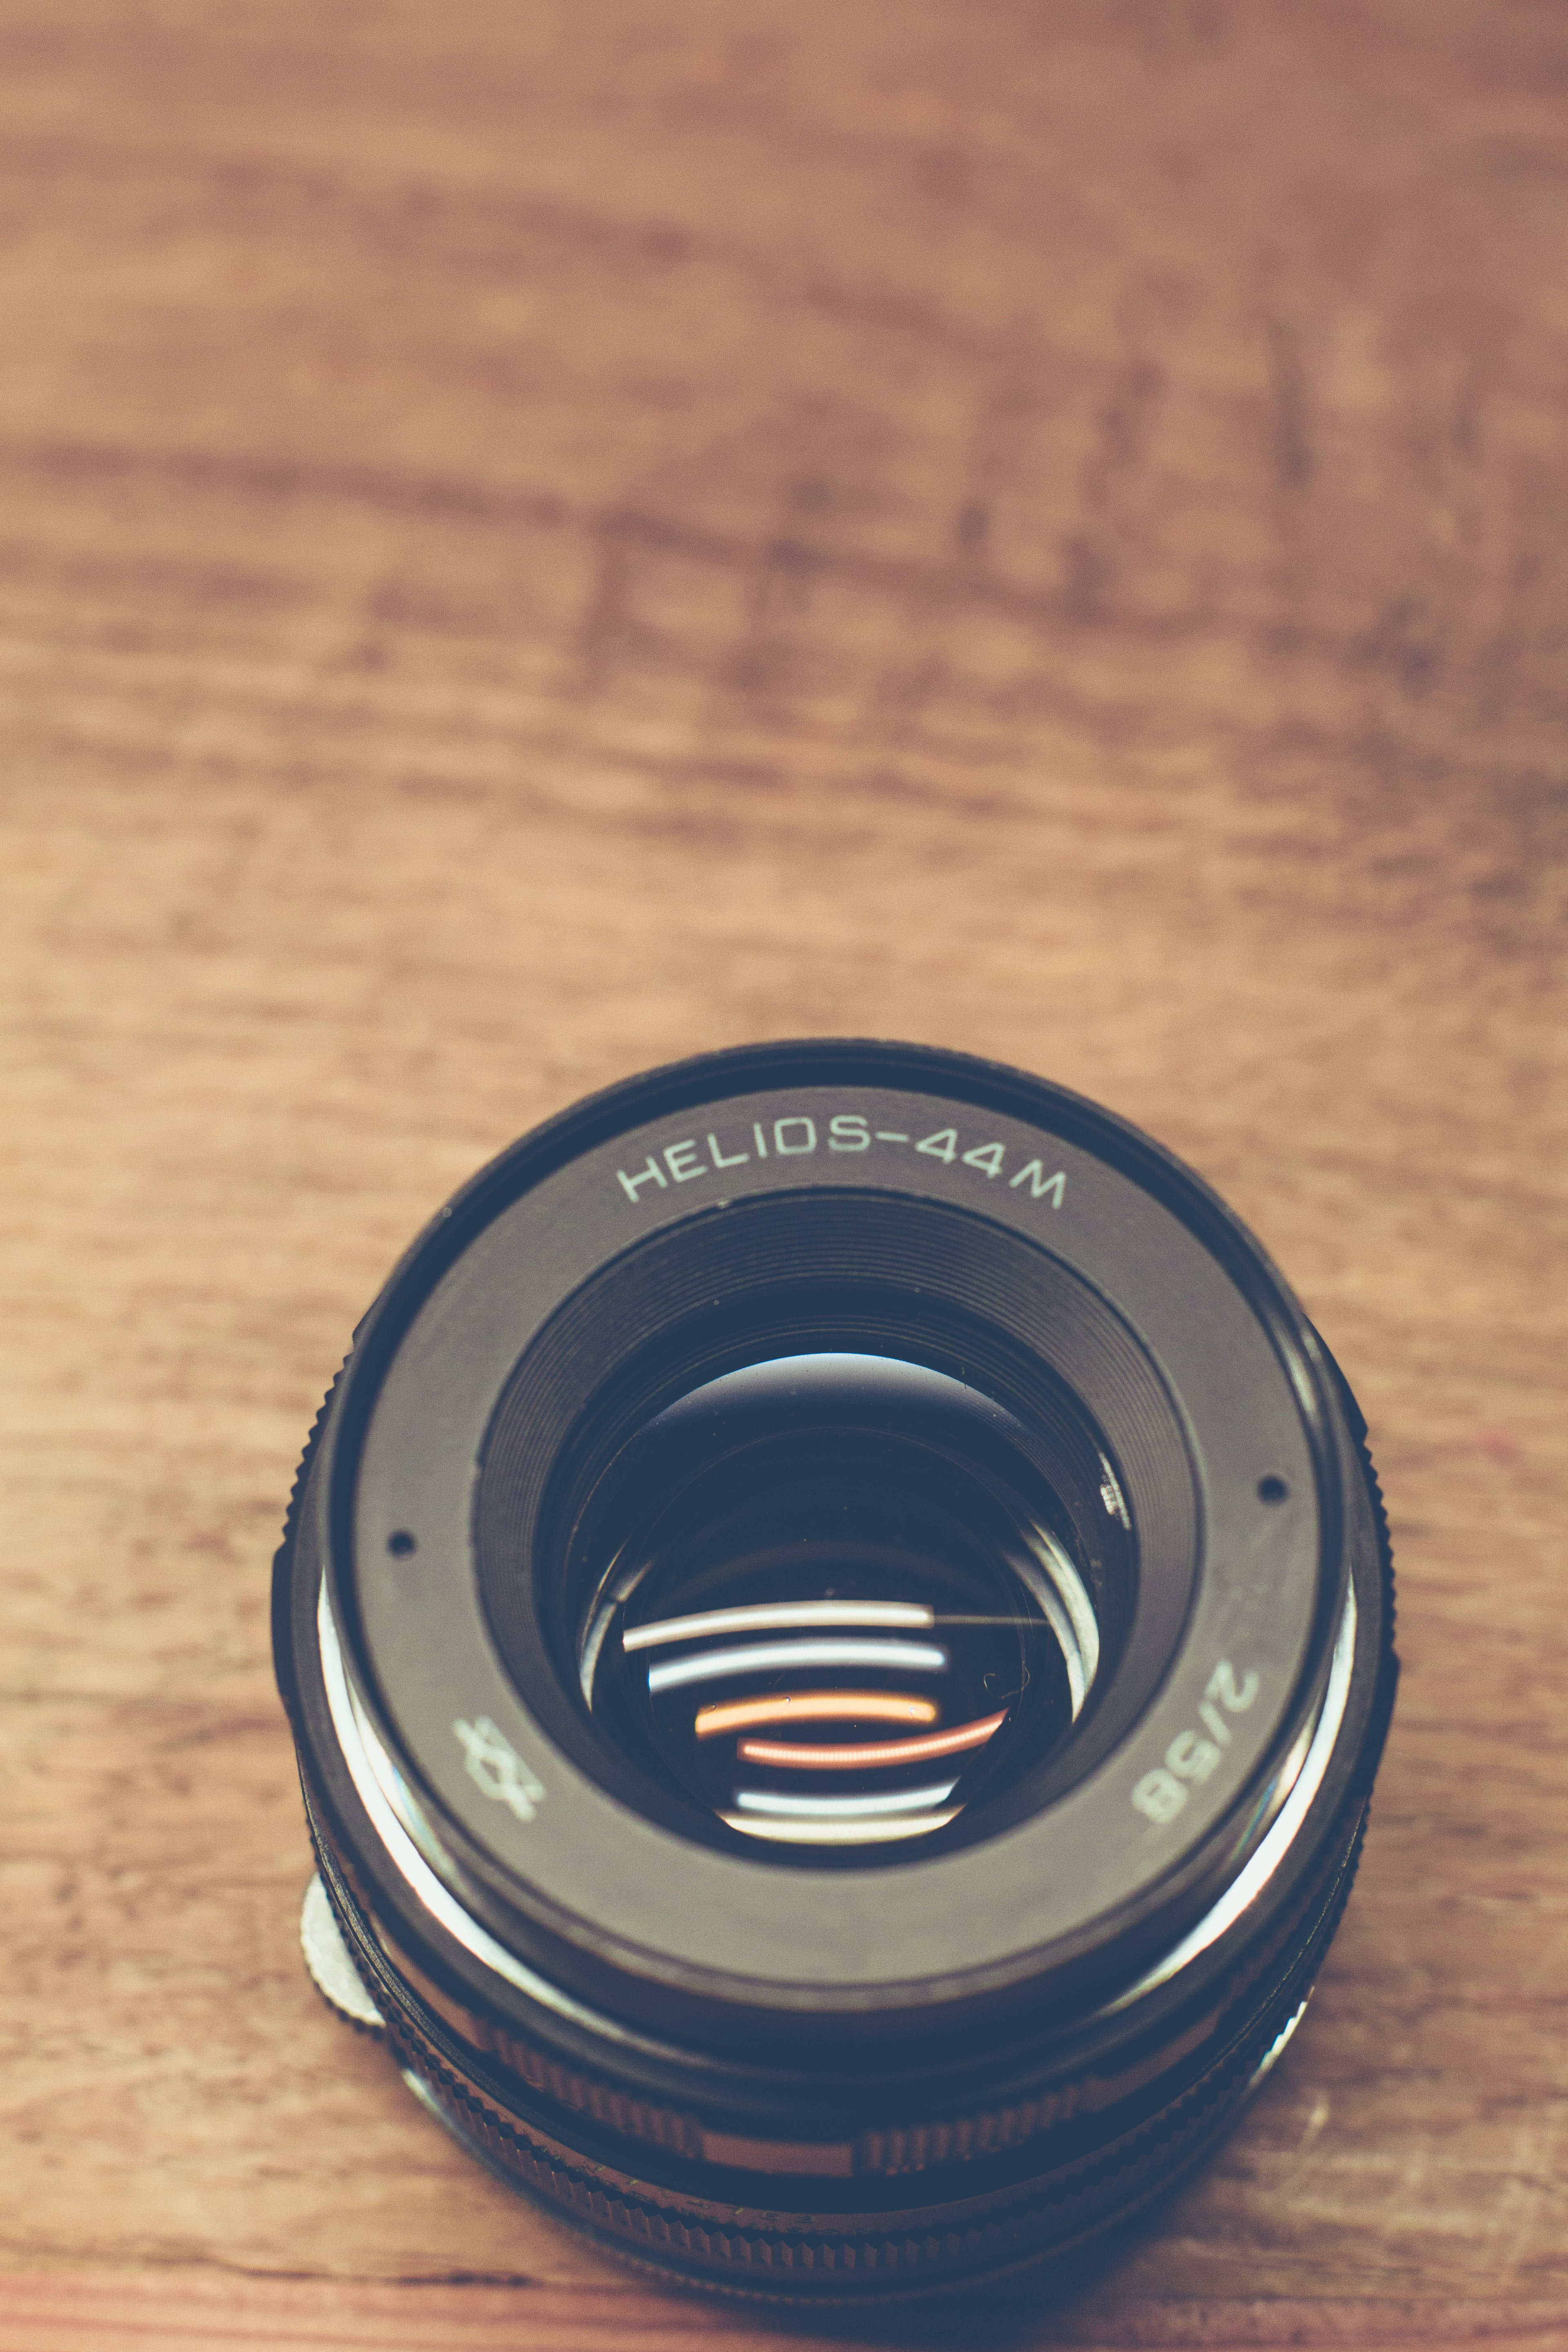 Black Helios-44m Camera Lens